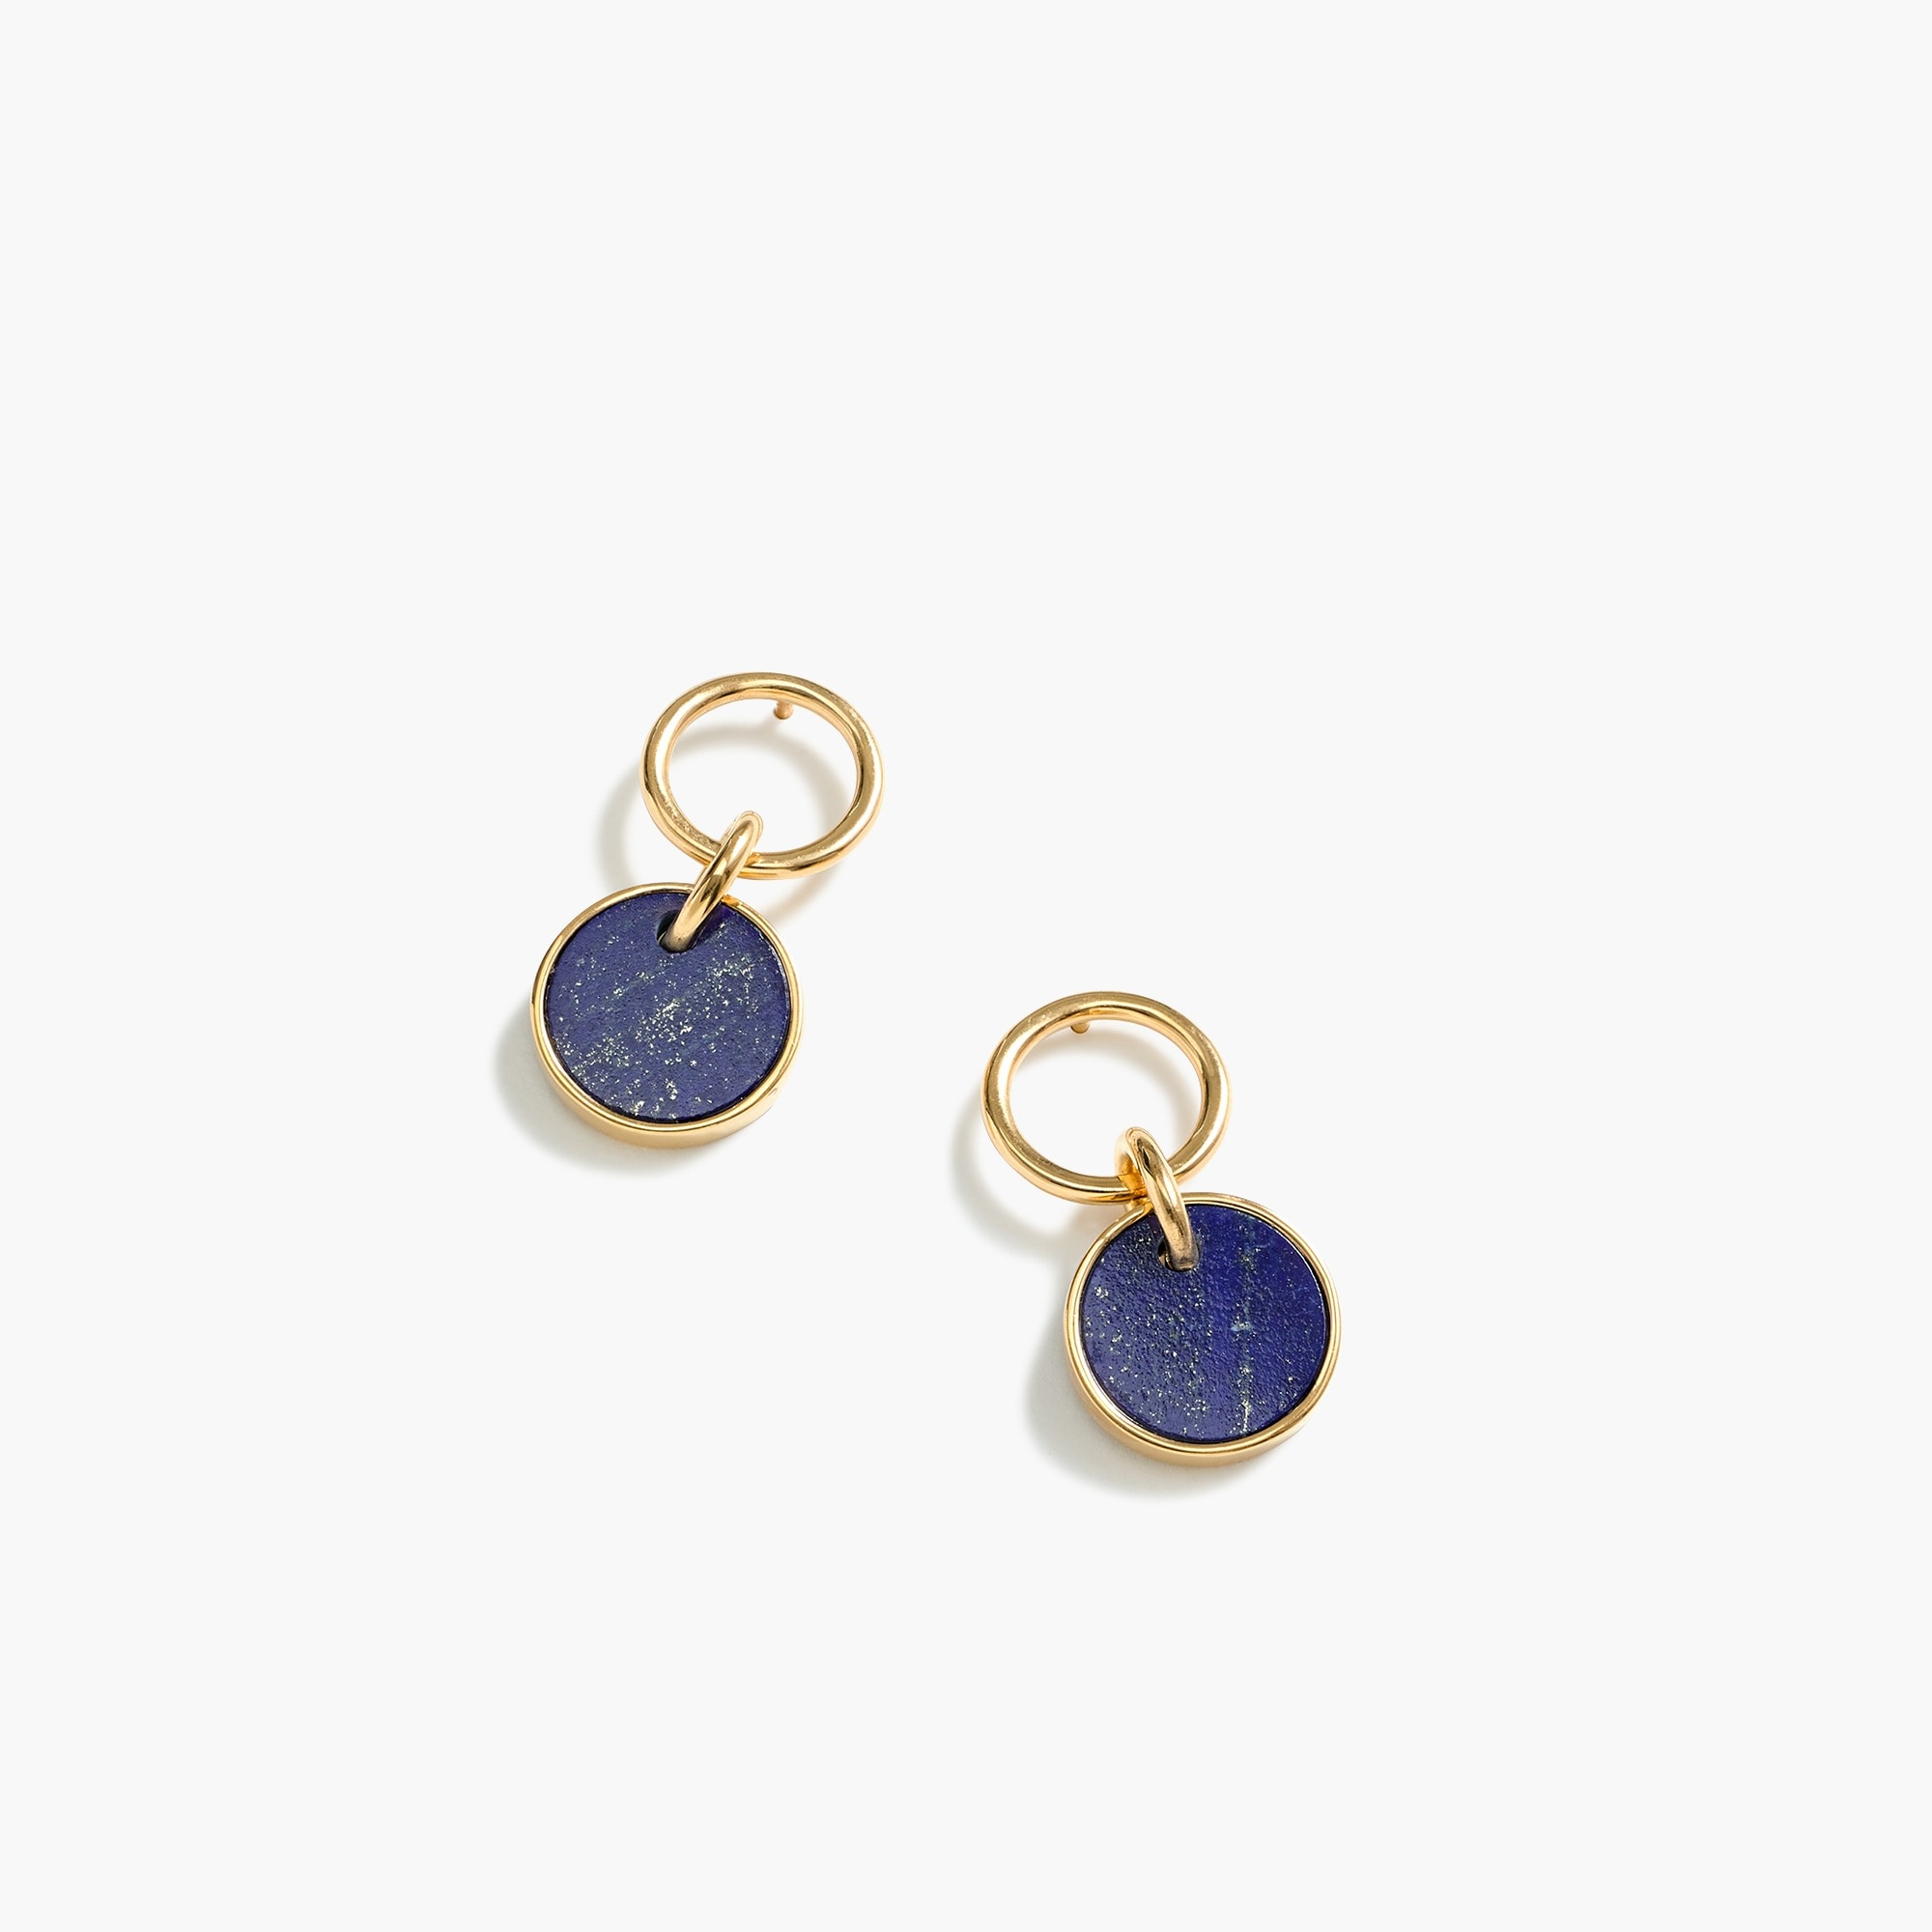 Demi-fine 14k gold-plated lapis earrings women jewelry c